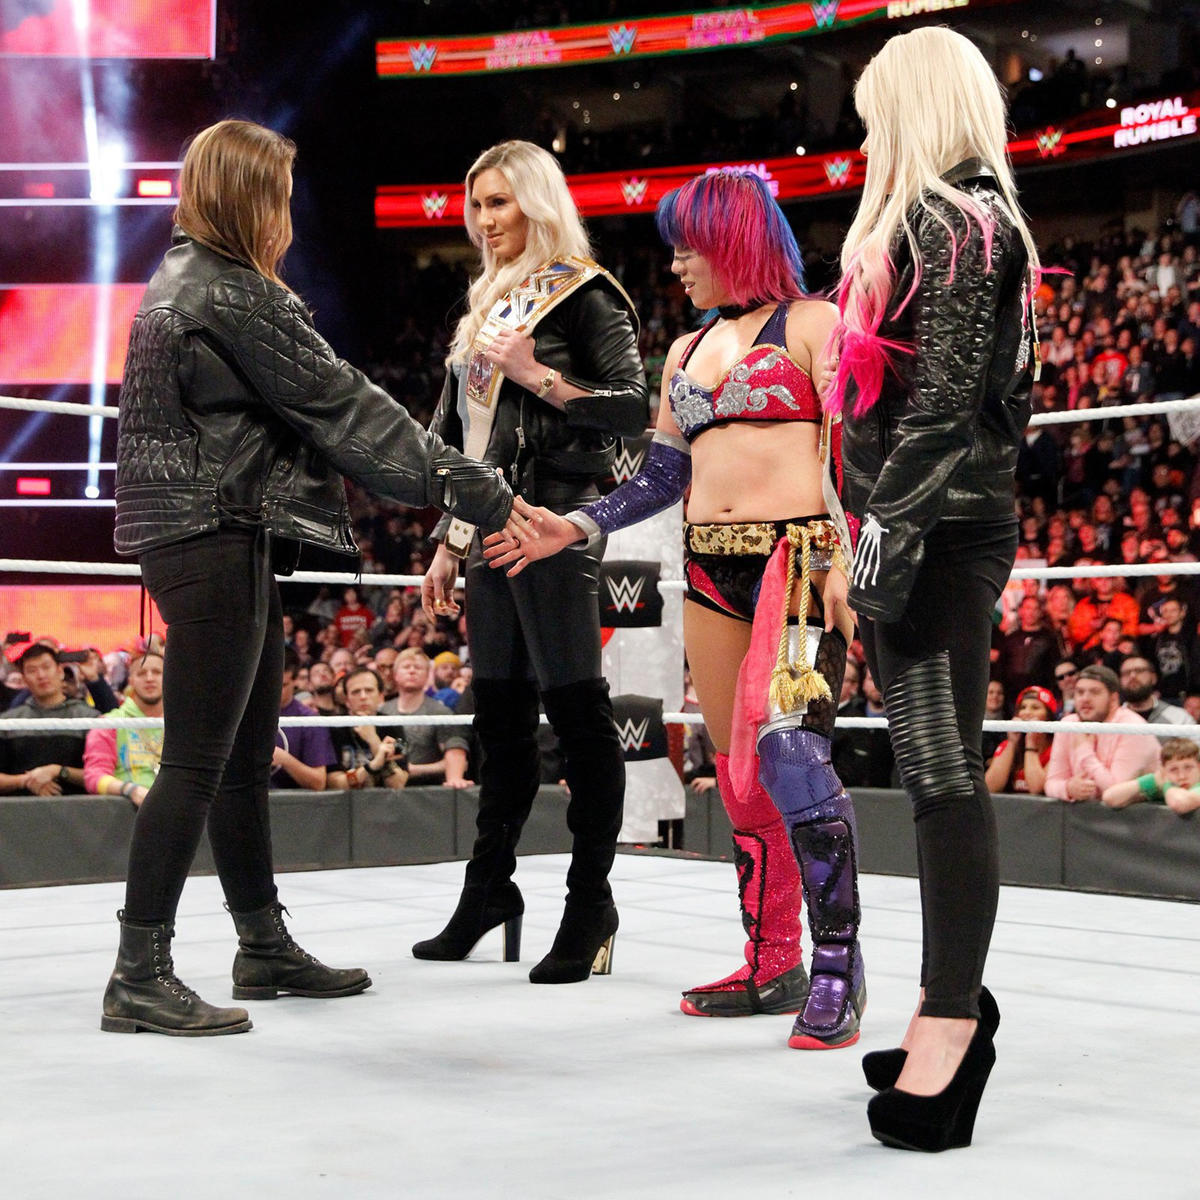 Asuka is not impressed by Rousey and refuses to shake her hand.